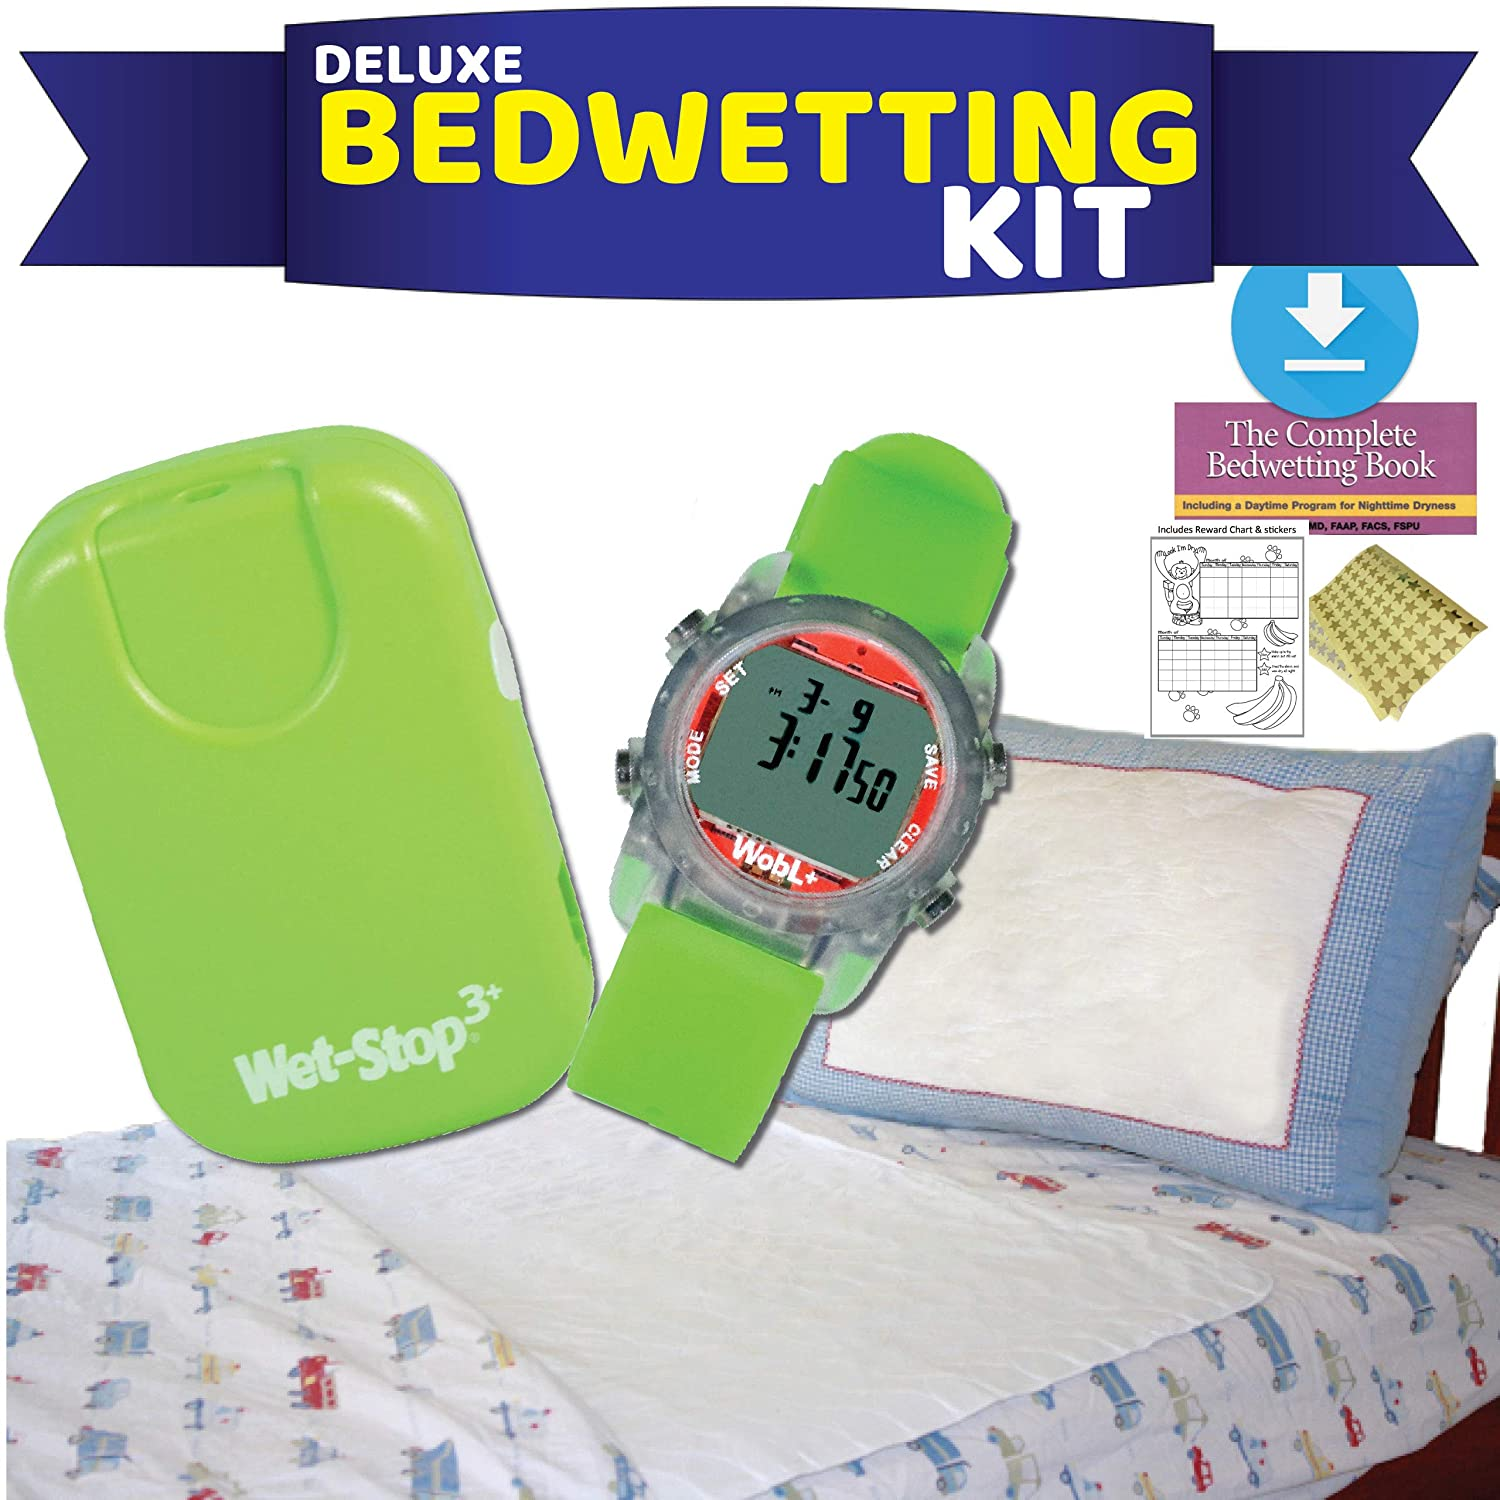 Amazon.com: Deluxe Bedwetting Kit-Wet Stop Bedwetting Alarm ...